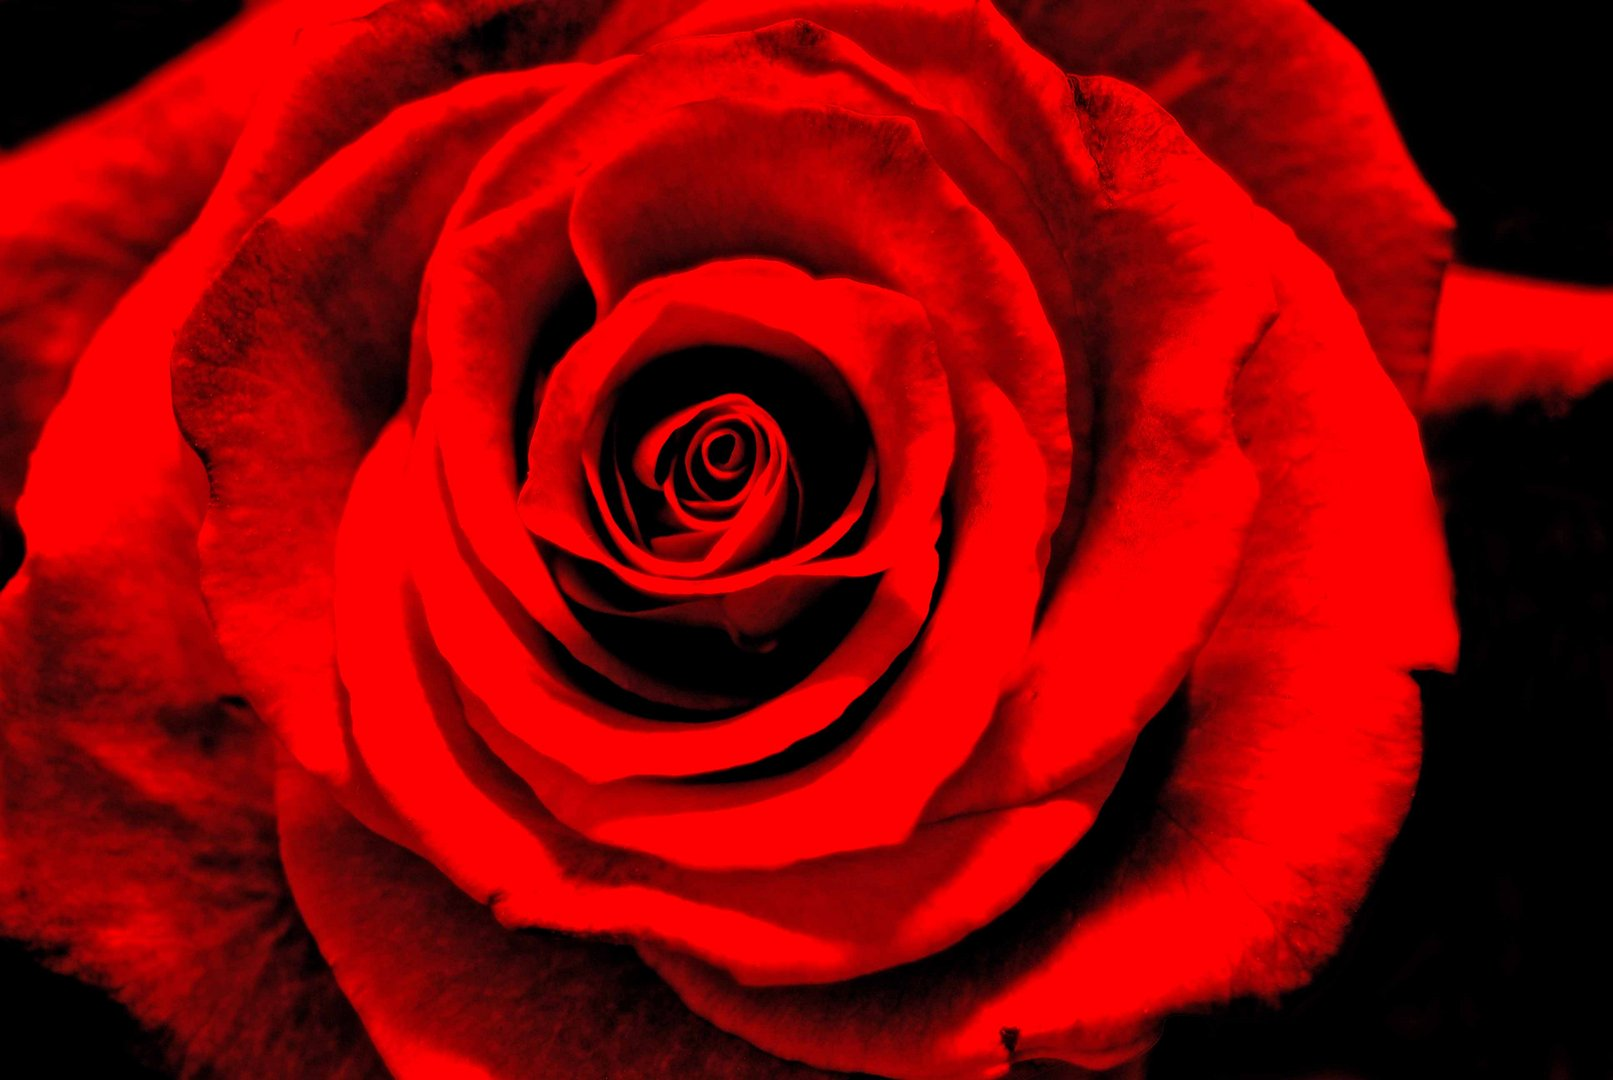 The Rose.....